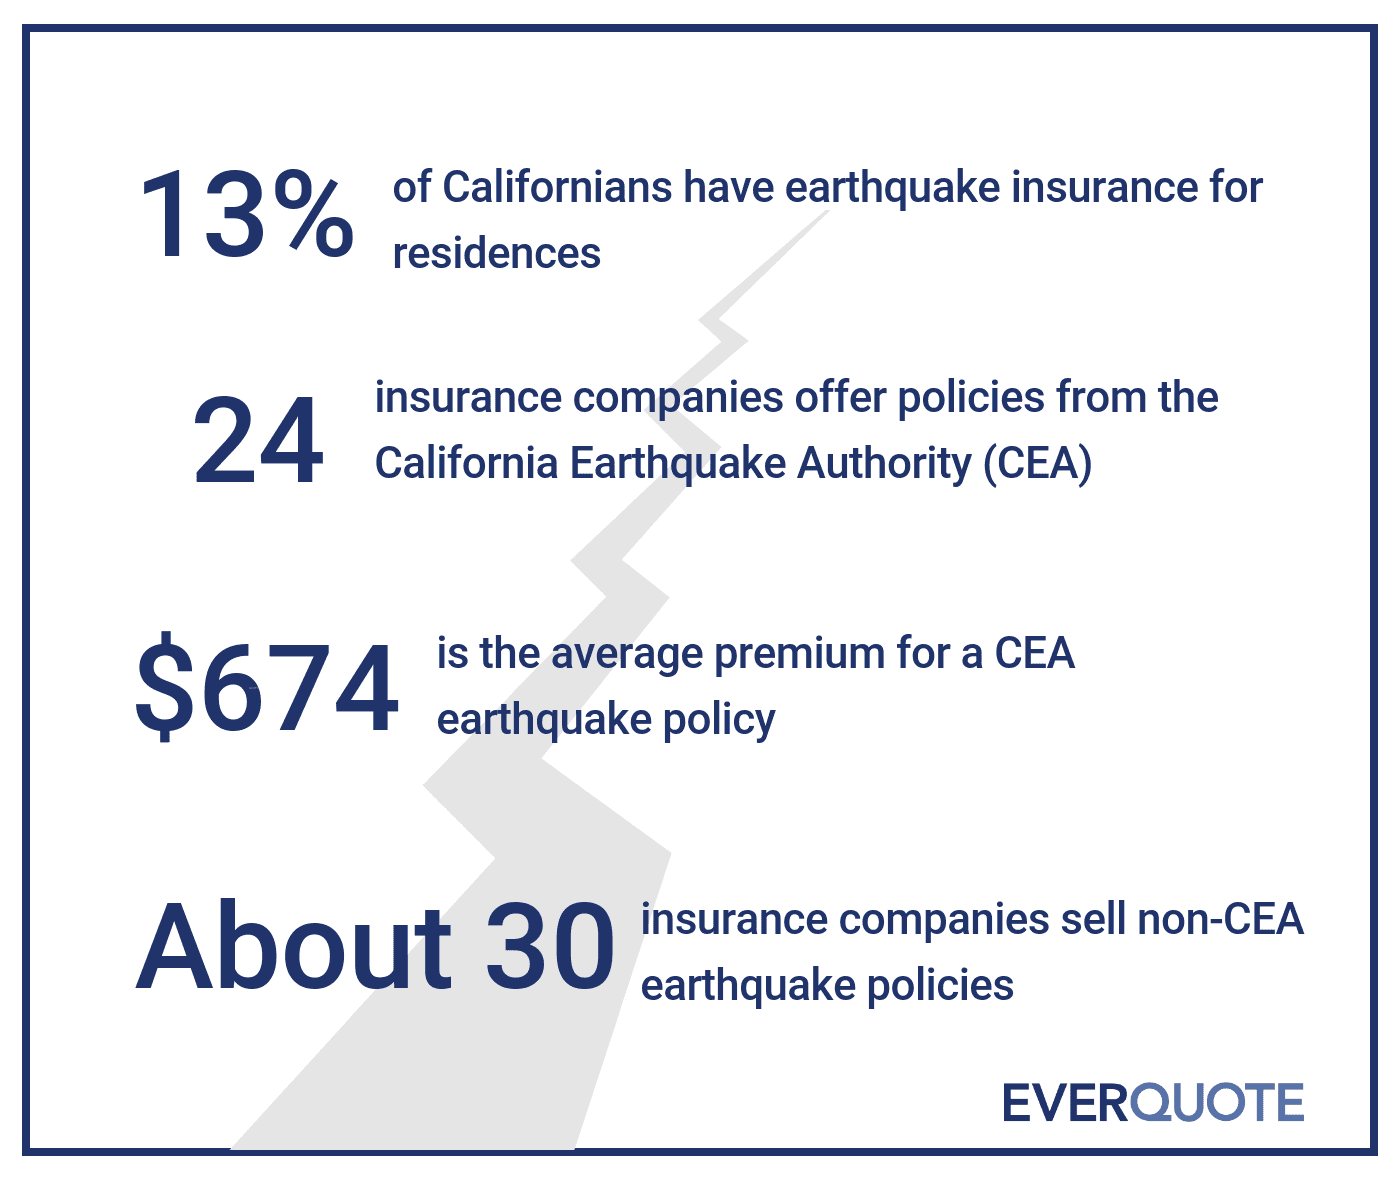 California earthquake insurance stats